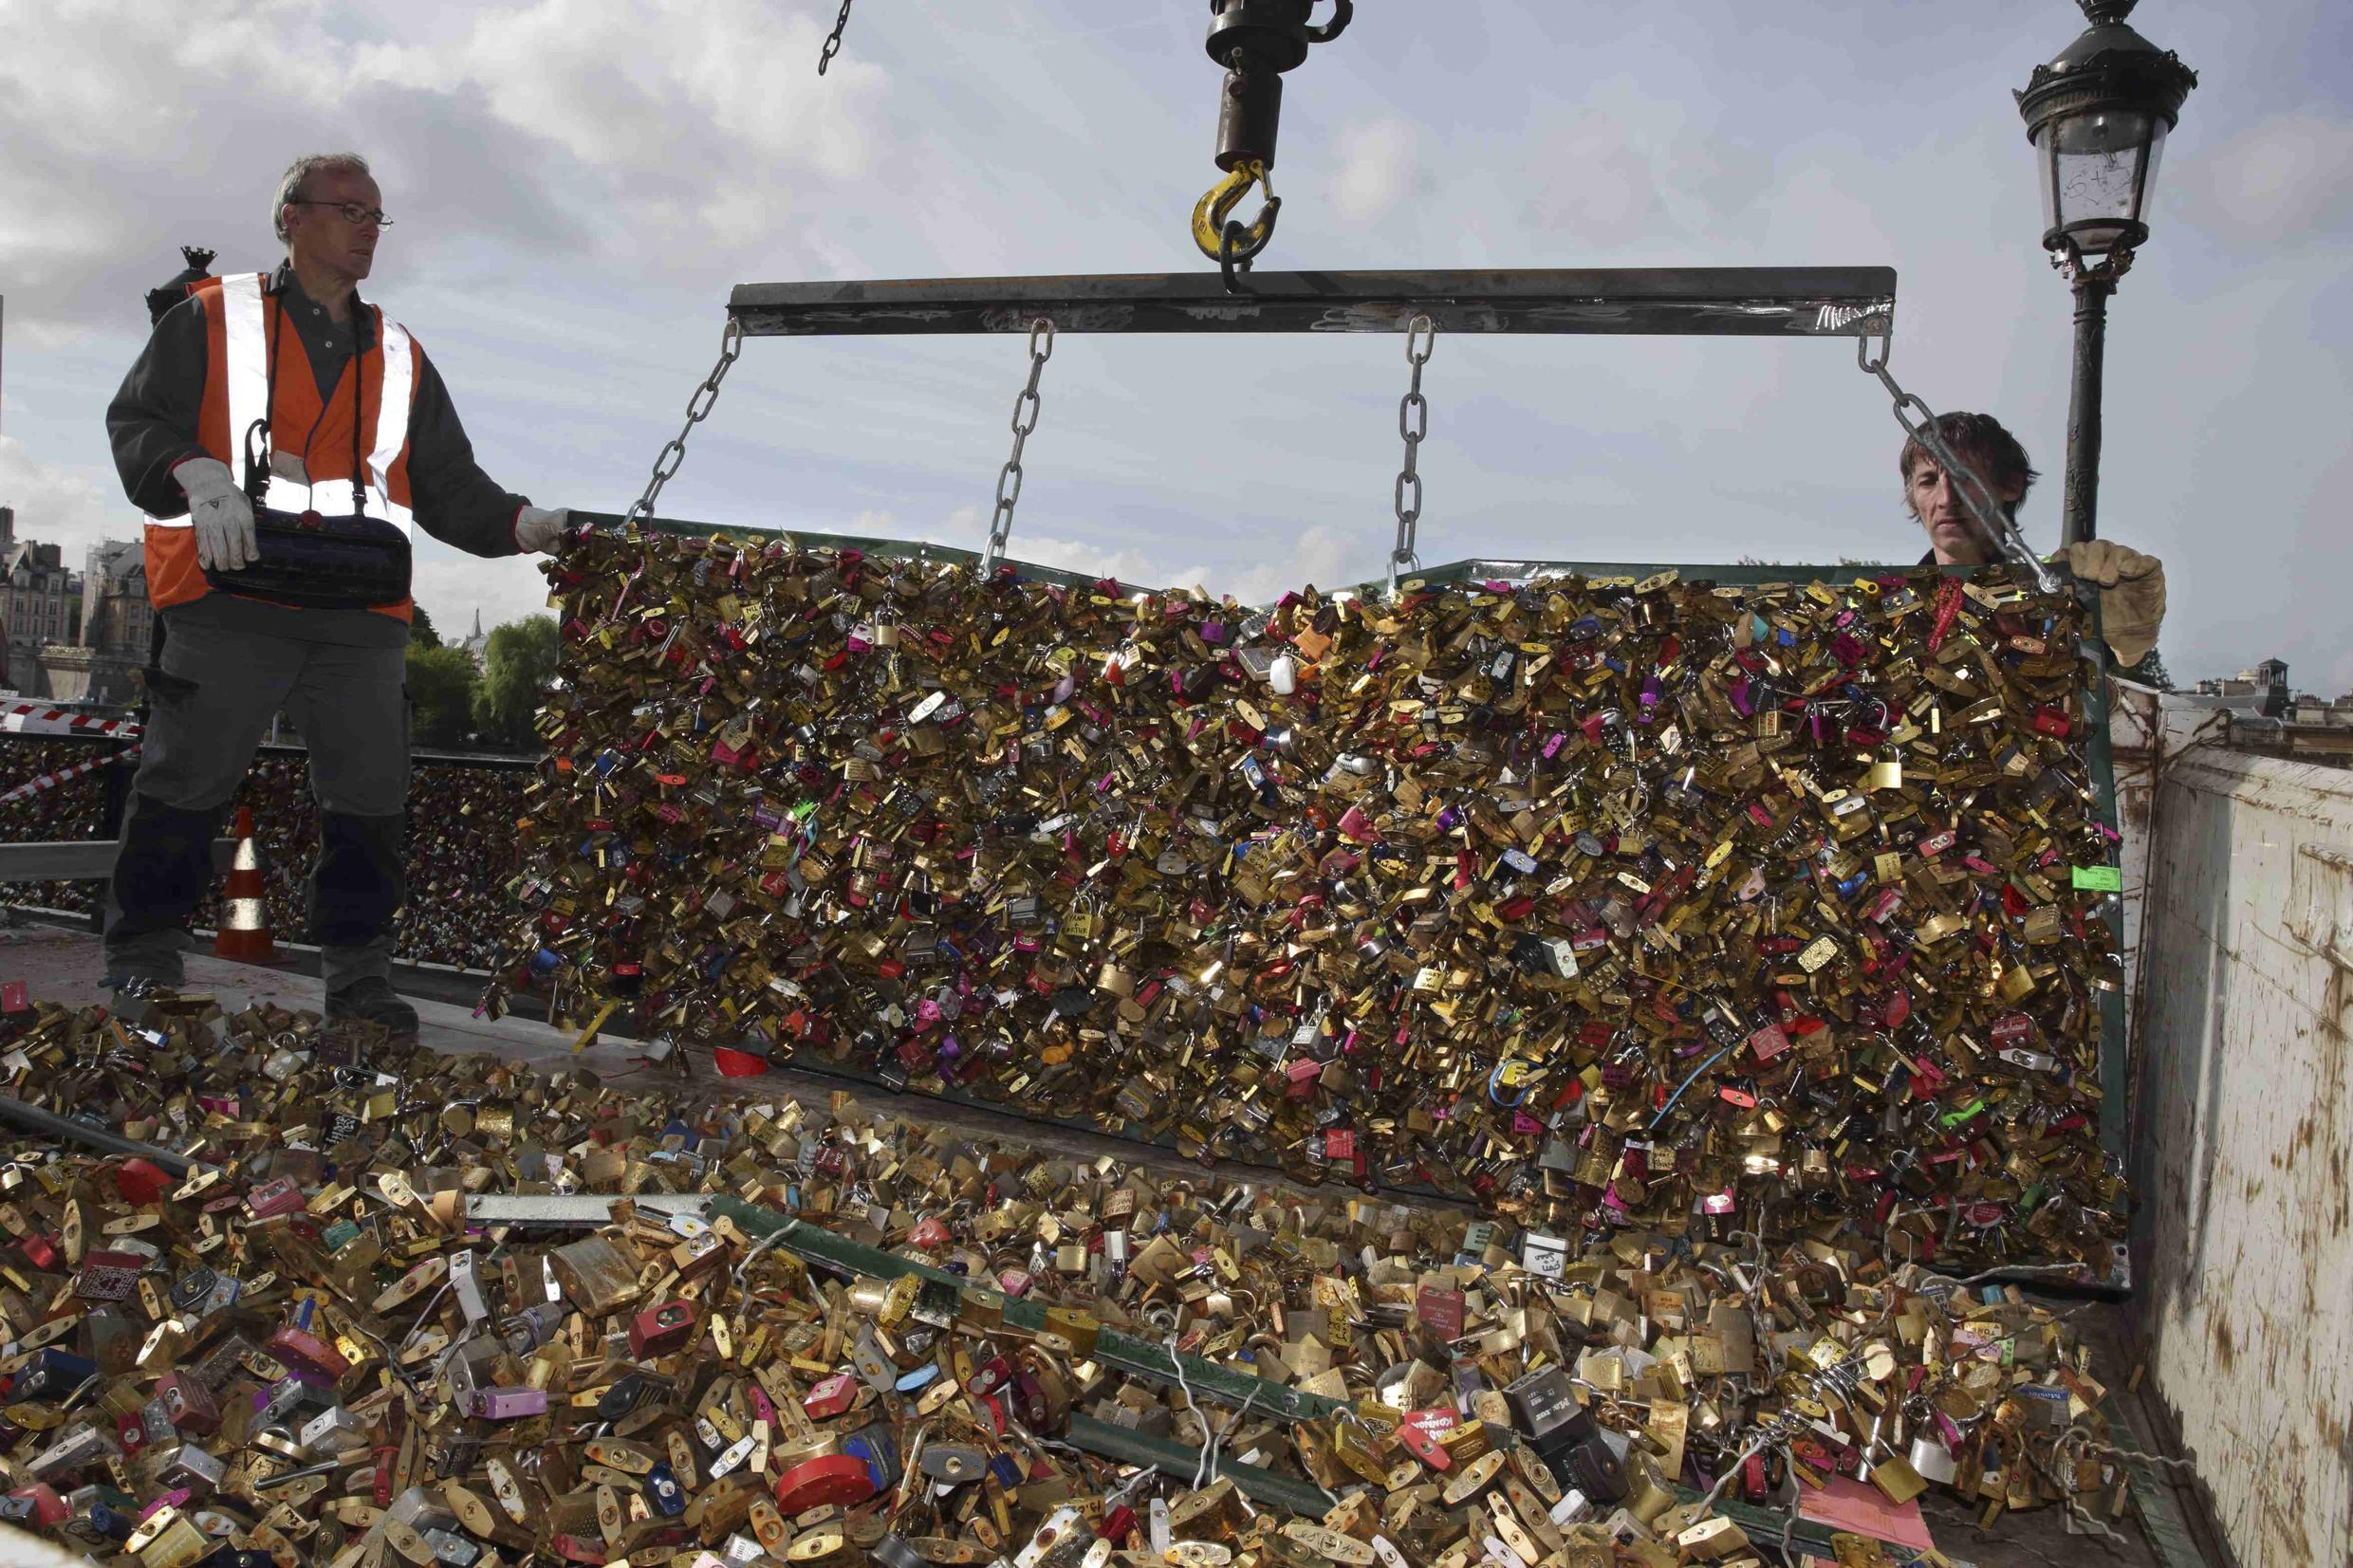 """City municipal employees lower iron grills covered with """"love locks"""" into a truck after they were removed from the Pont des Arts in Paris, France, June 1, 2015"""